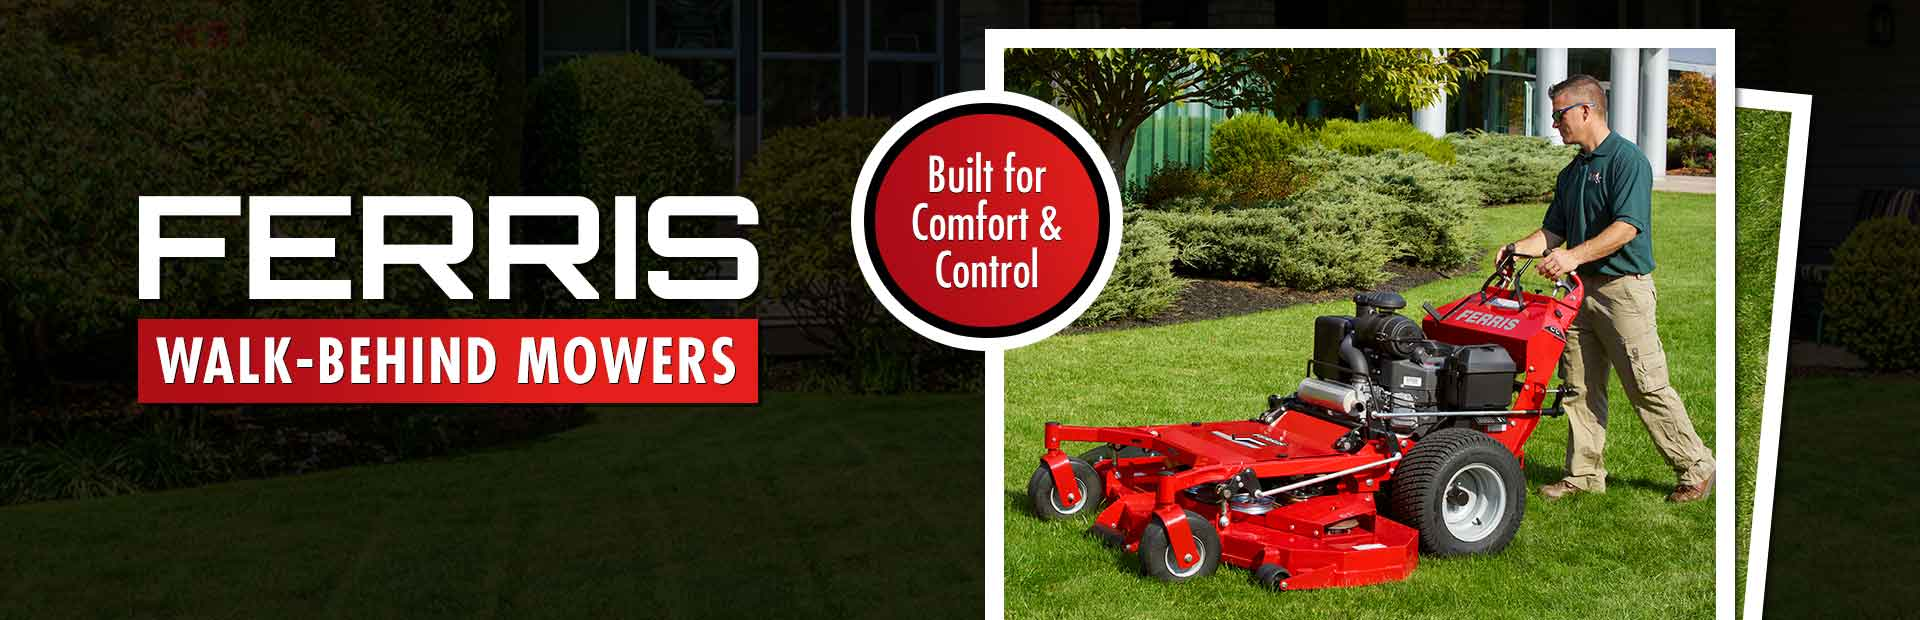 Ferris Walk-Behind Mowers: Click here to view the models.